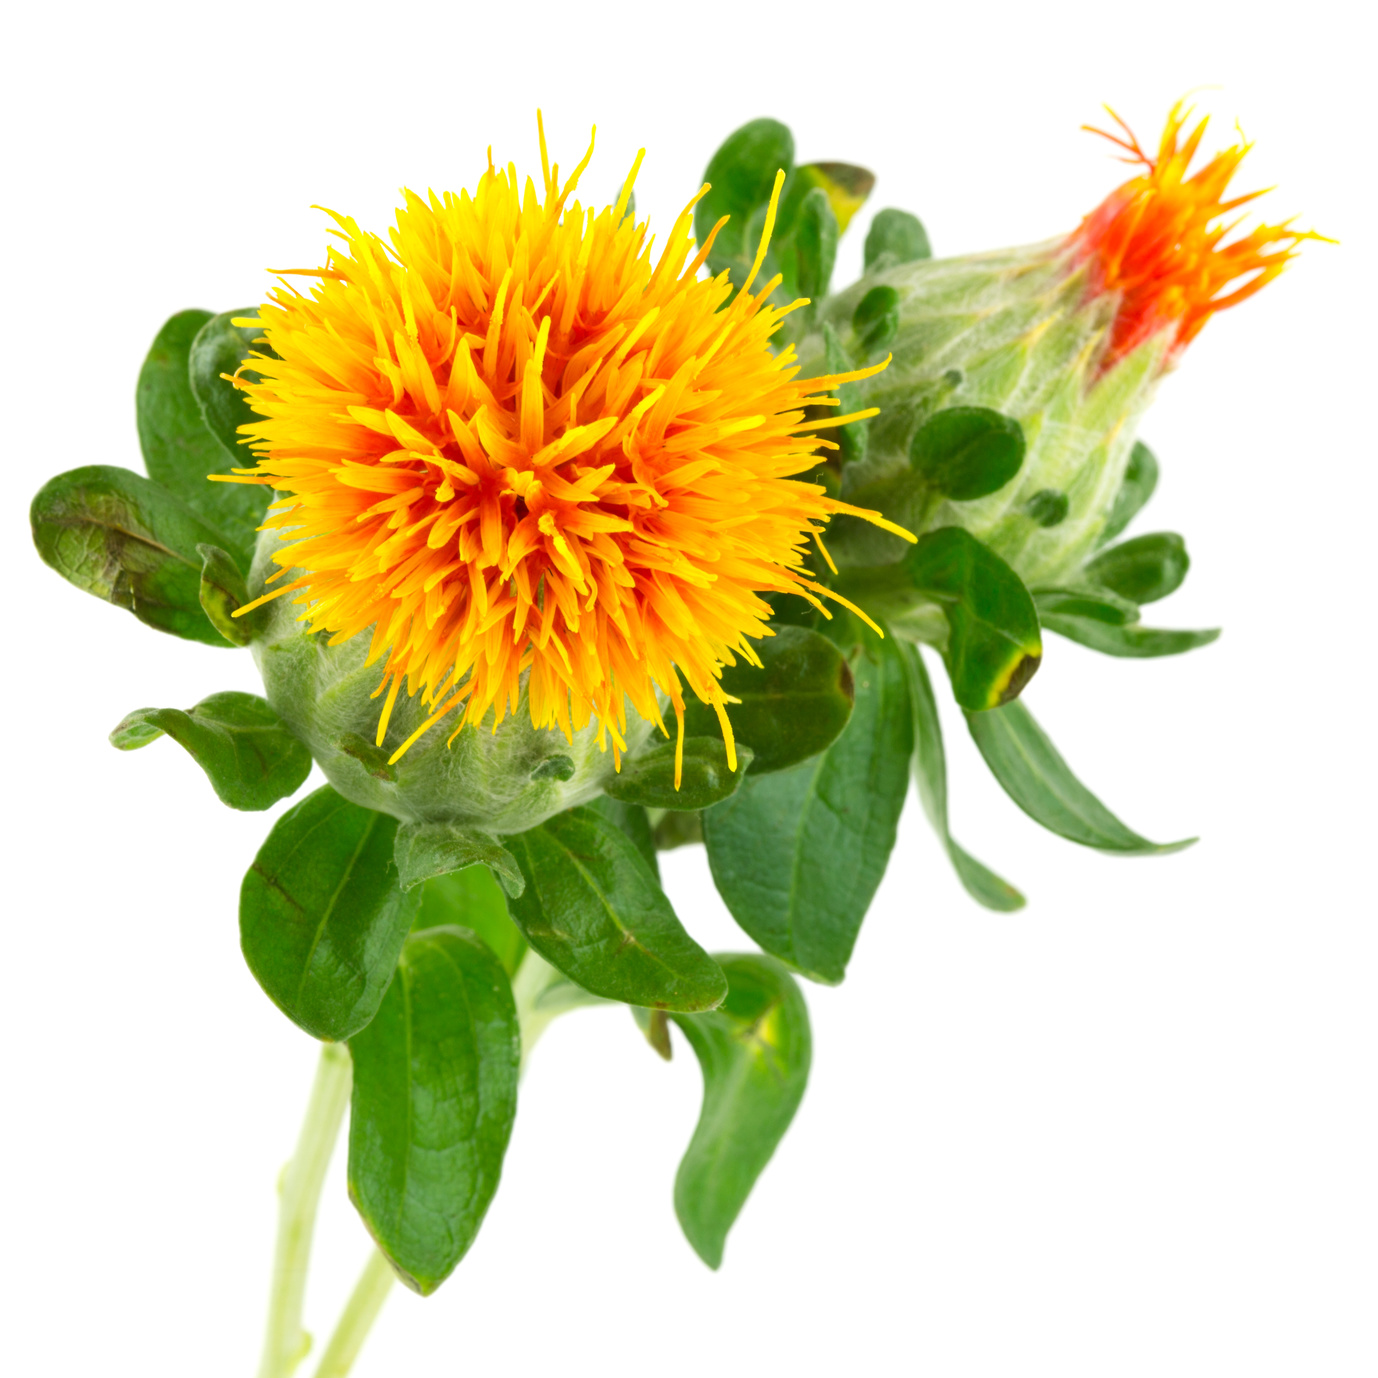 Distelöl,Carthamus Tinctorius (Safflower) Seed Oil